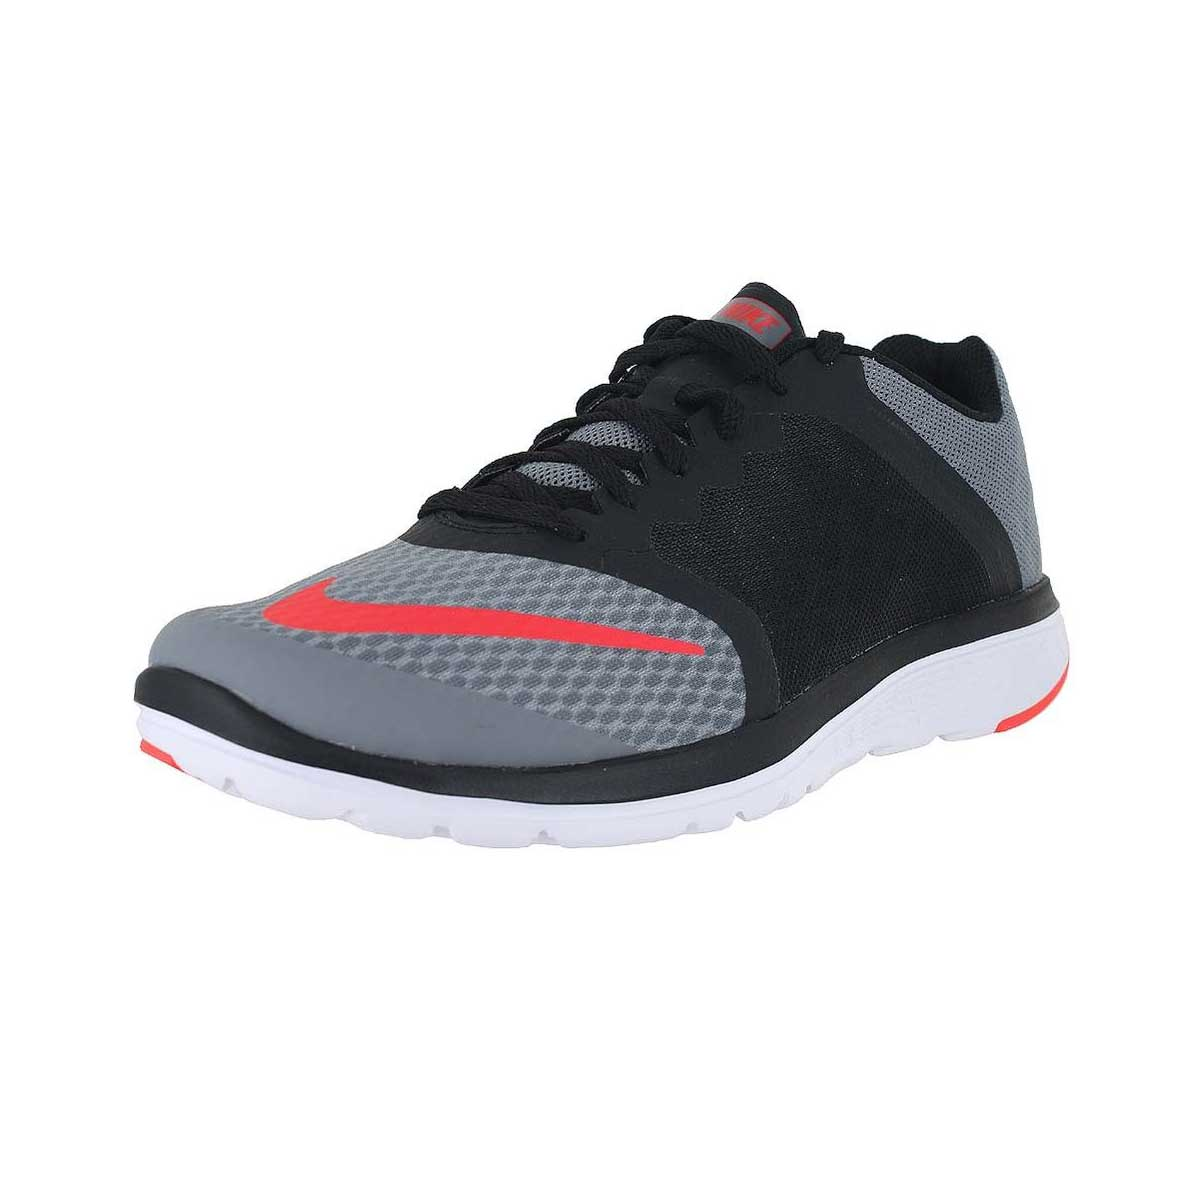 Running Shoes, Running, Buy, Nike, Nike FS Lite 3 Running Shoes  (Black/Grey/Red)